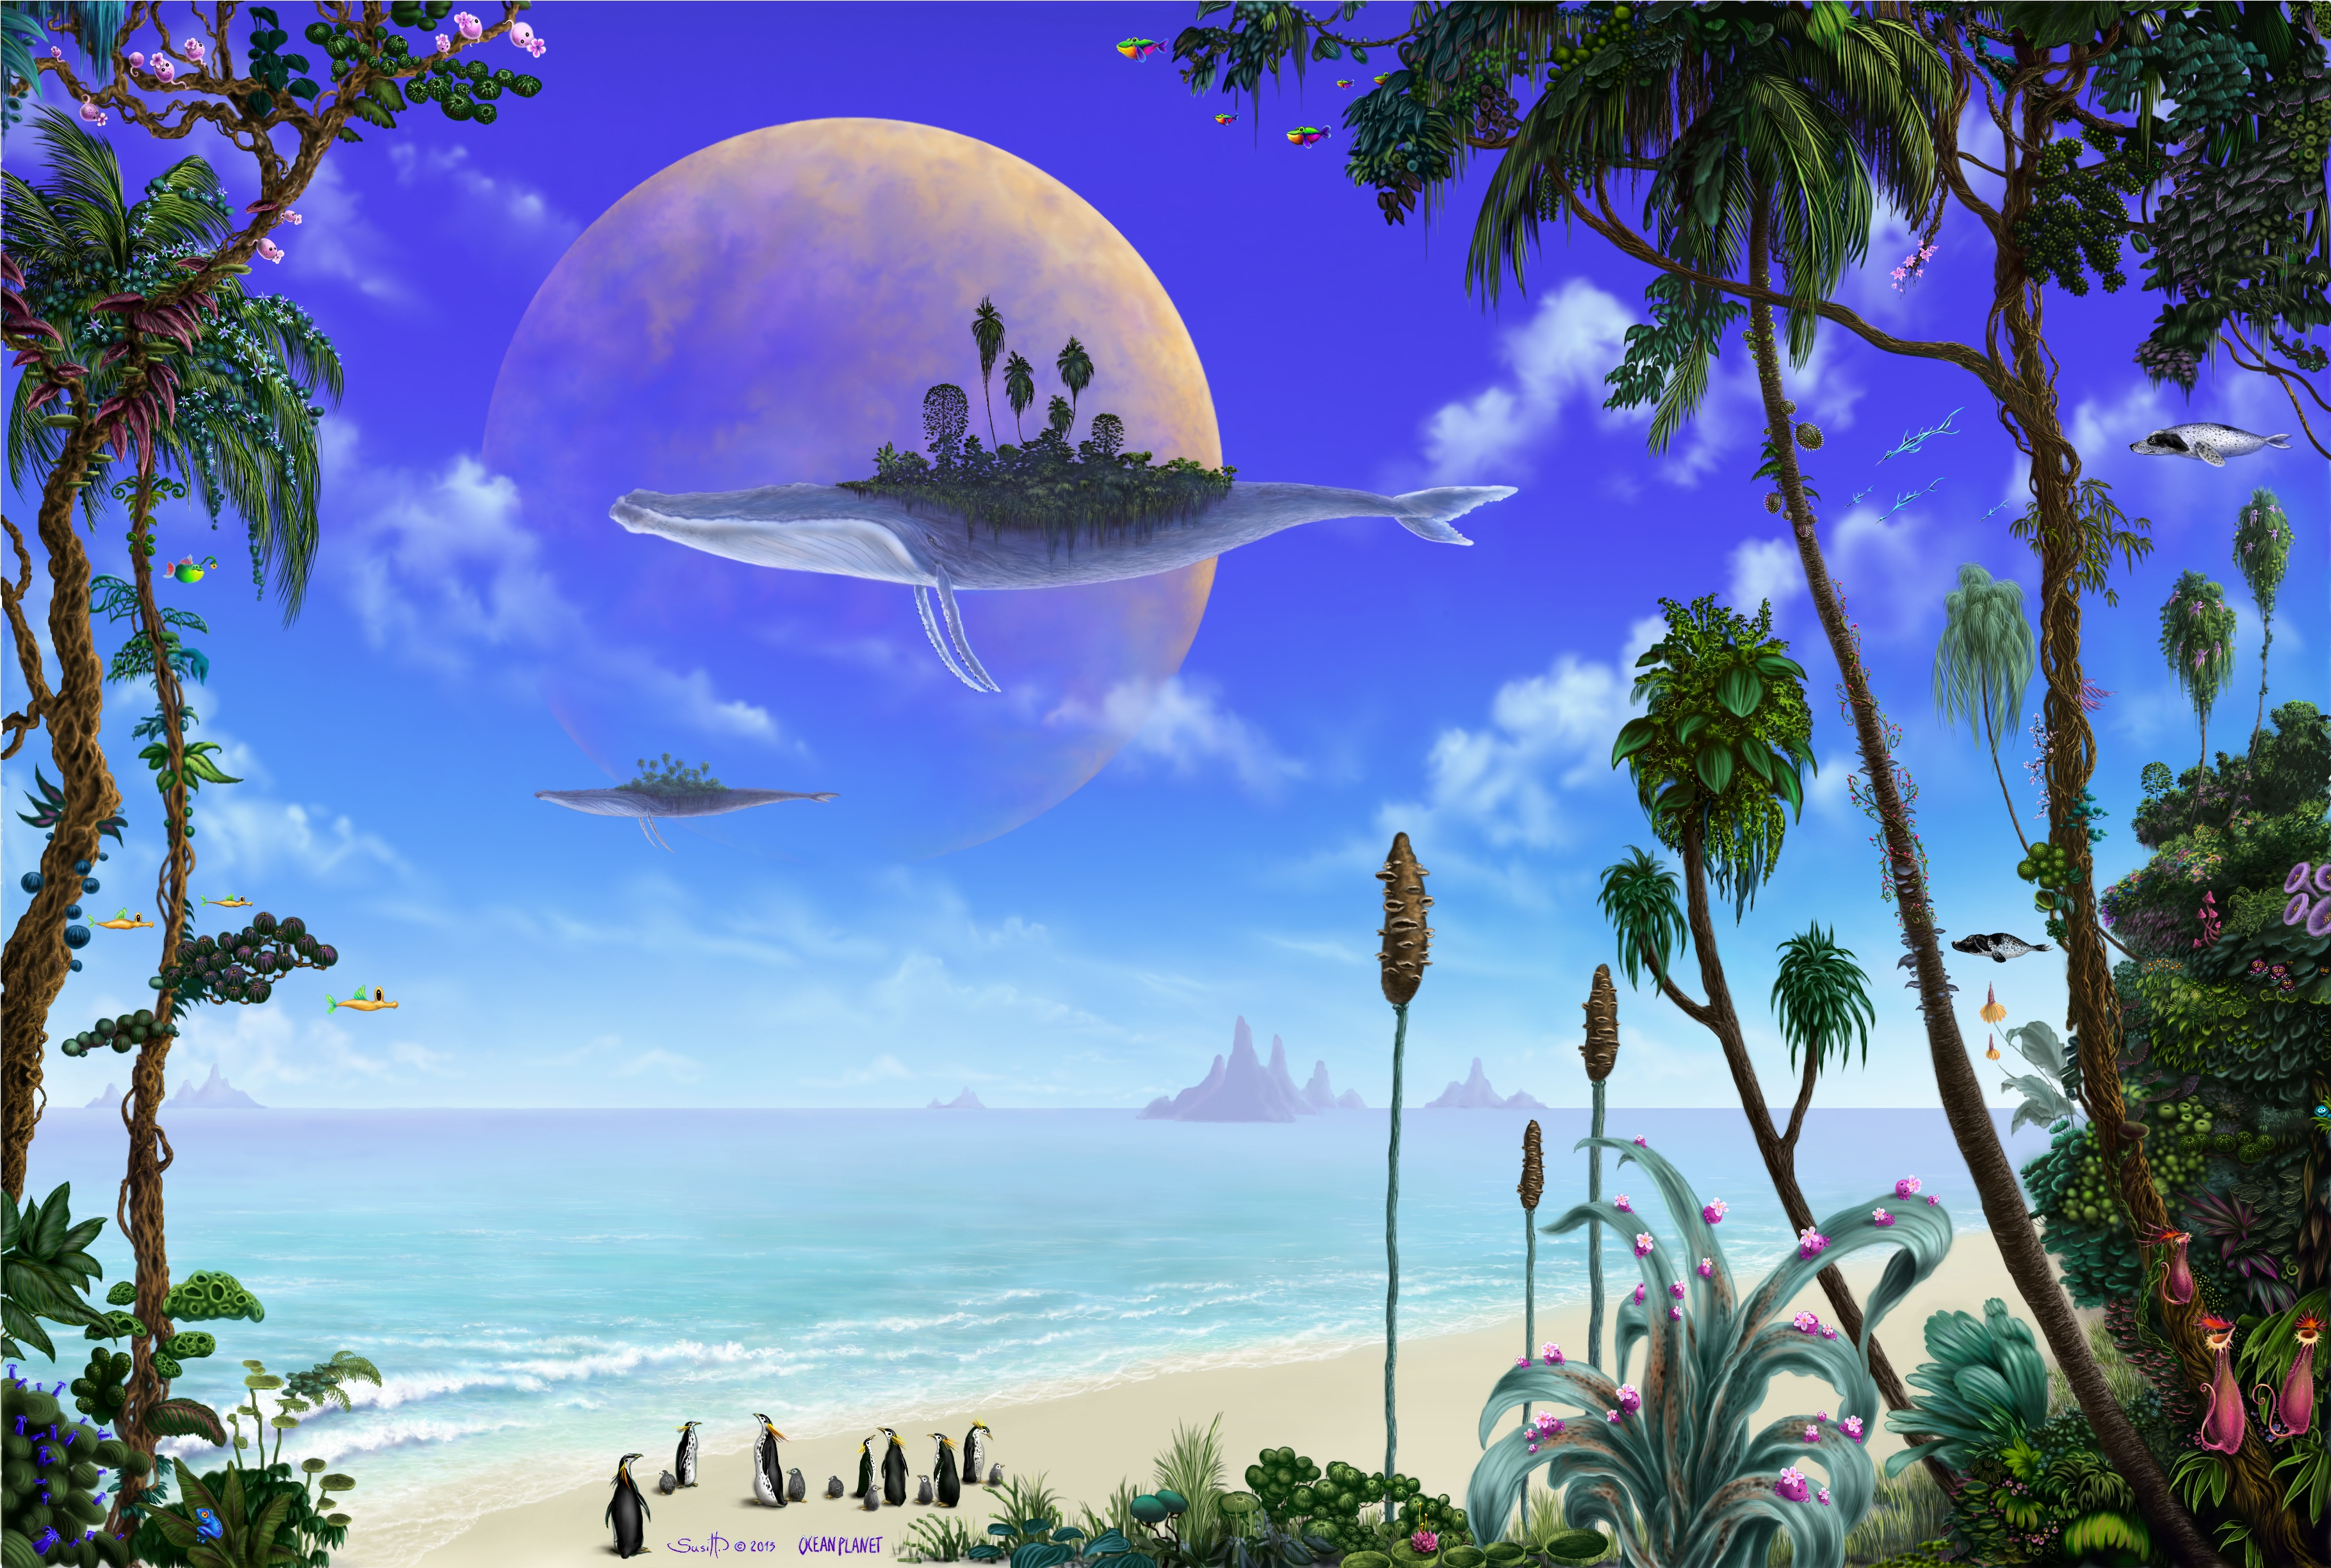 james cameron's avatar images blue sky on arimoon hd wallpaper and